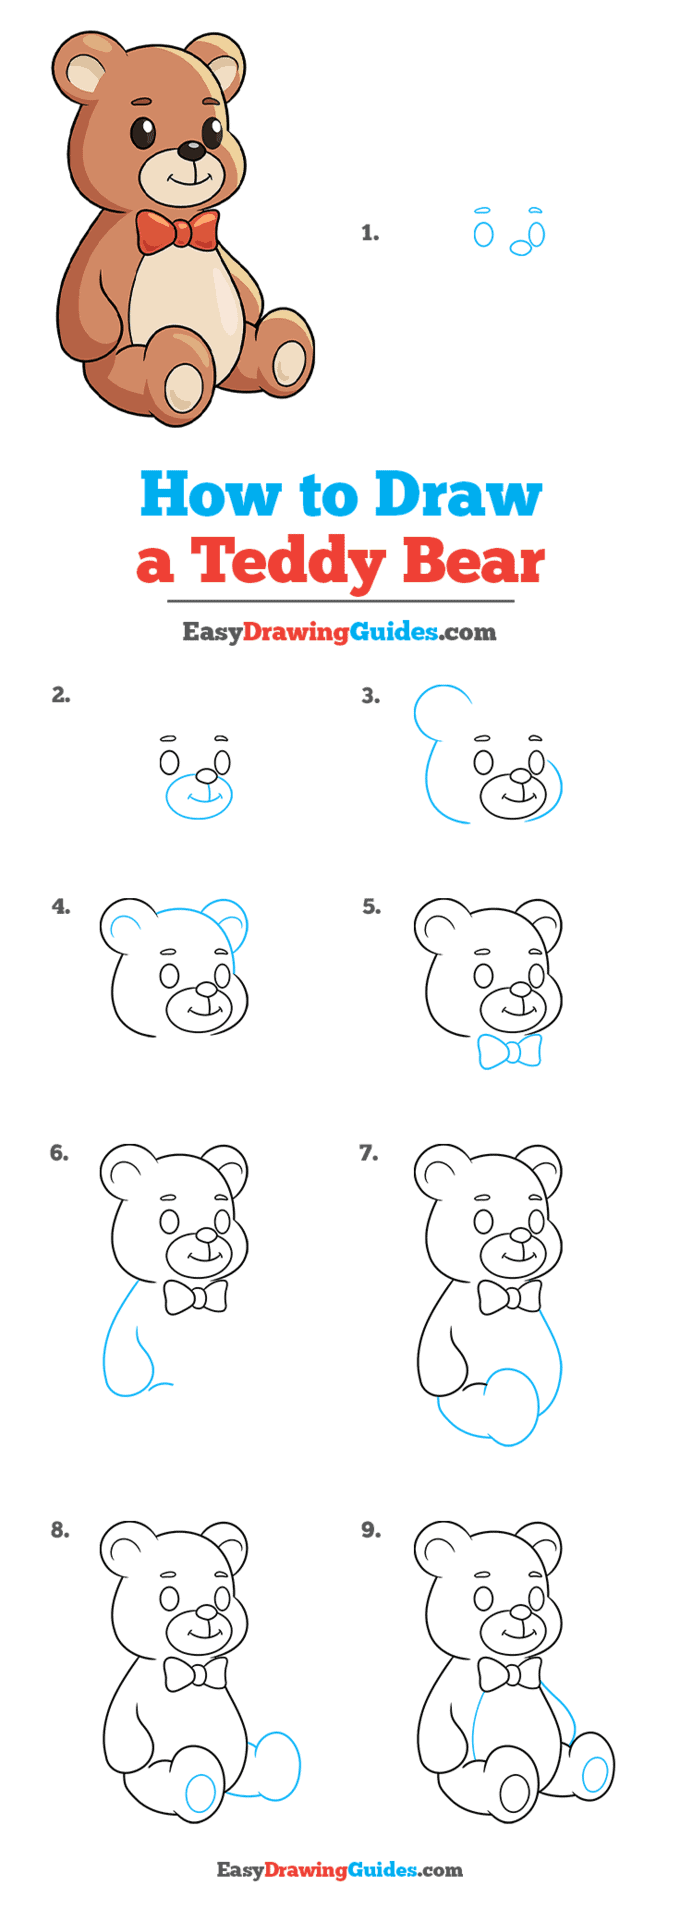 how to draw a teddy bear step by step tutorial image